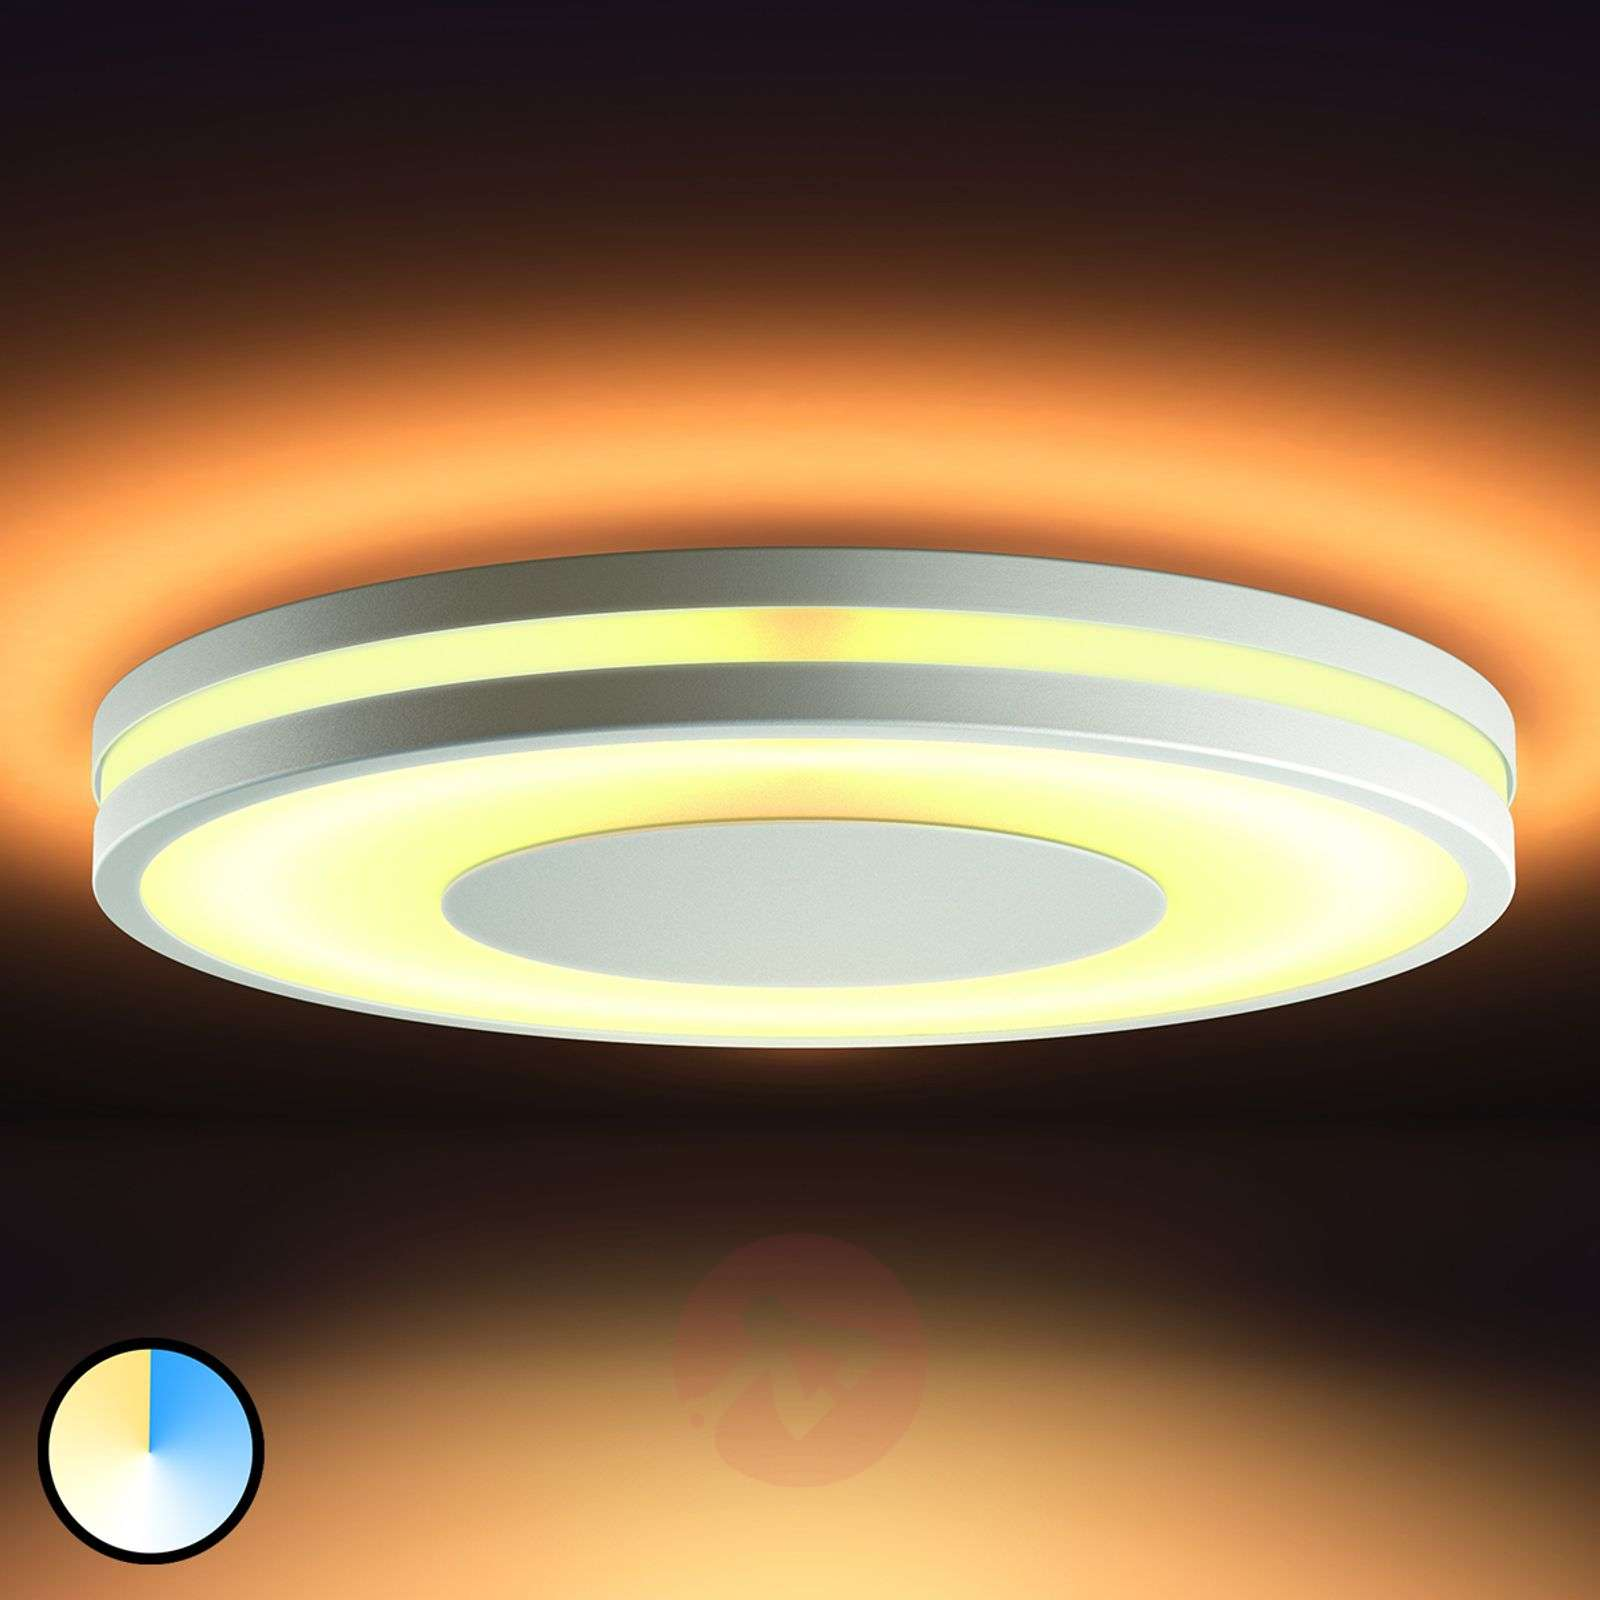 functional led ceiling lamp philips hue being. Black Bedroom Furniture Sets. Home Design Ideas